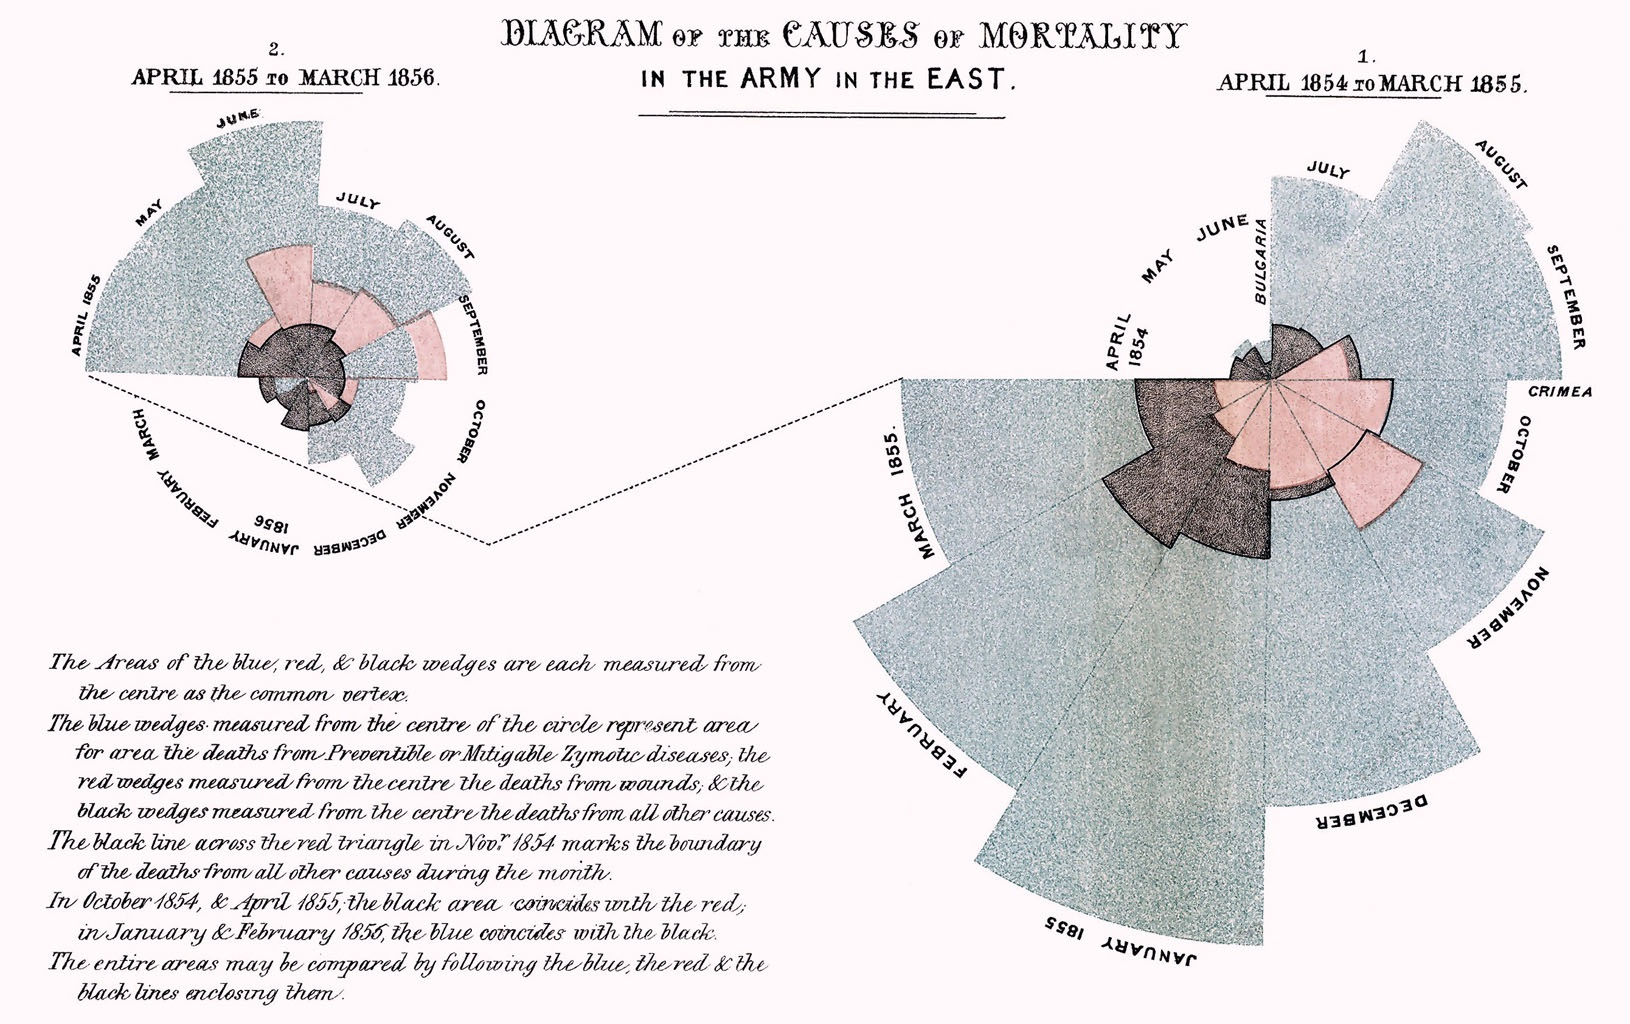 Florence nightingales rose diagram 1858 january 1859 detail from nightingales diagram of the causes of mortality in the army of the east please click on the link below to view and resize full image ccuart Gallery